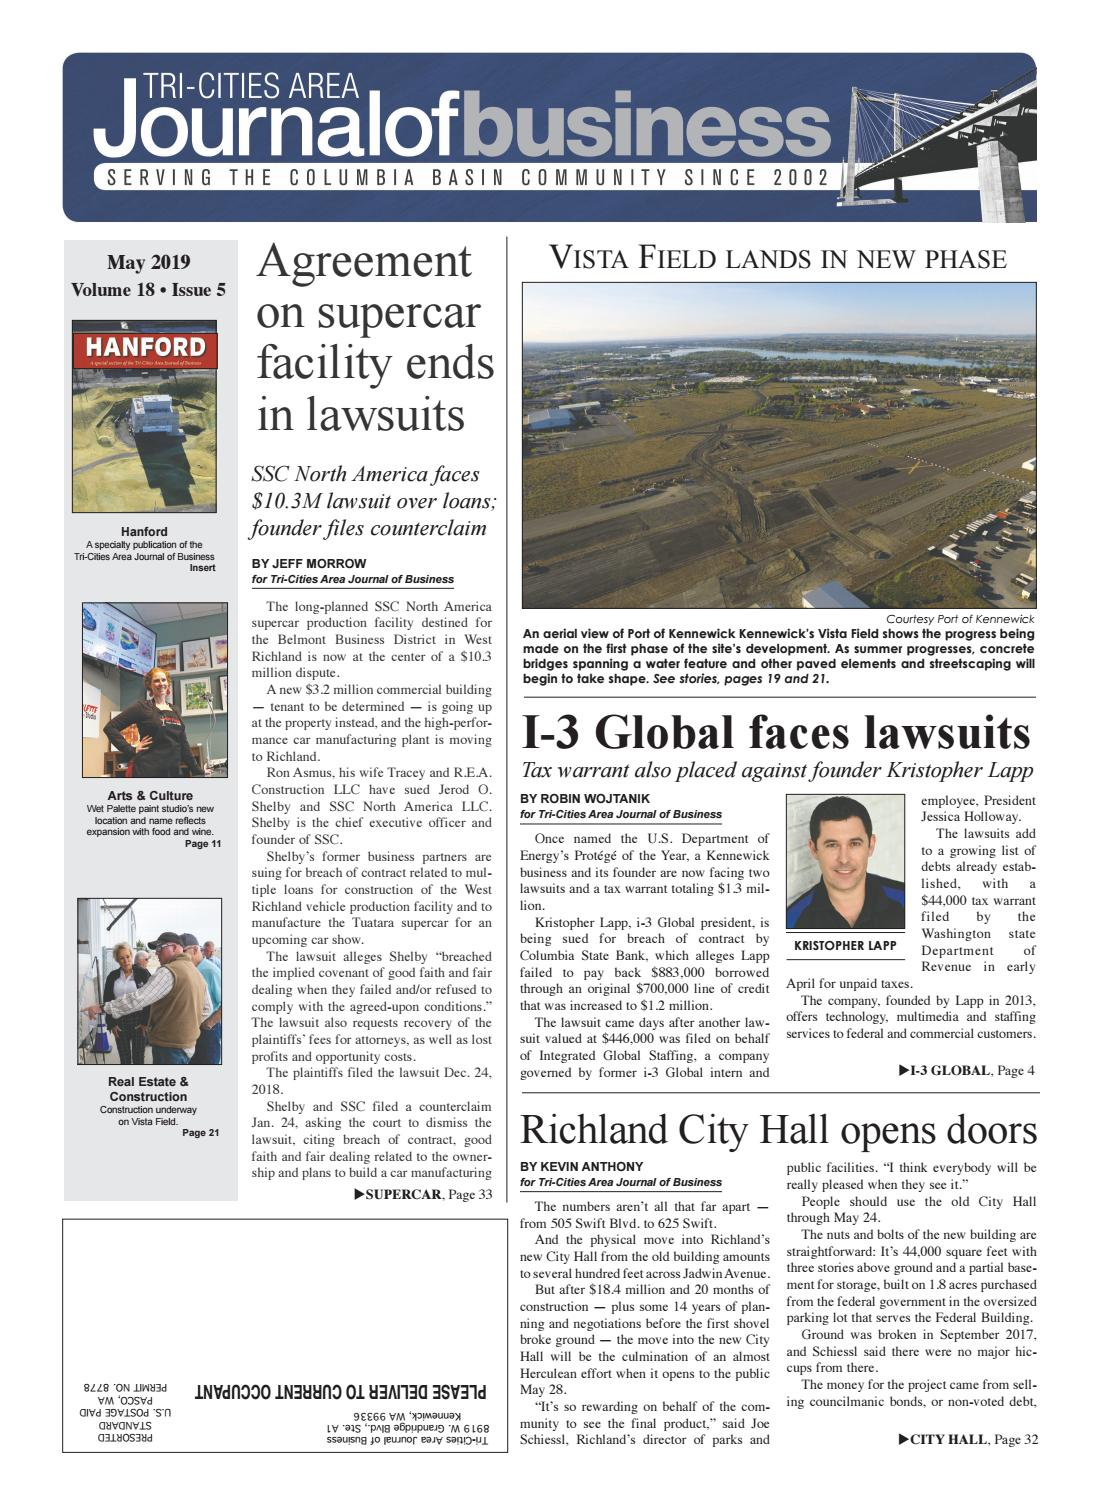 Tri-Cities Area Journal of Business May 2019 by Tri-Cities